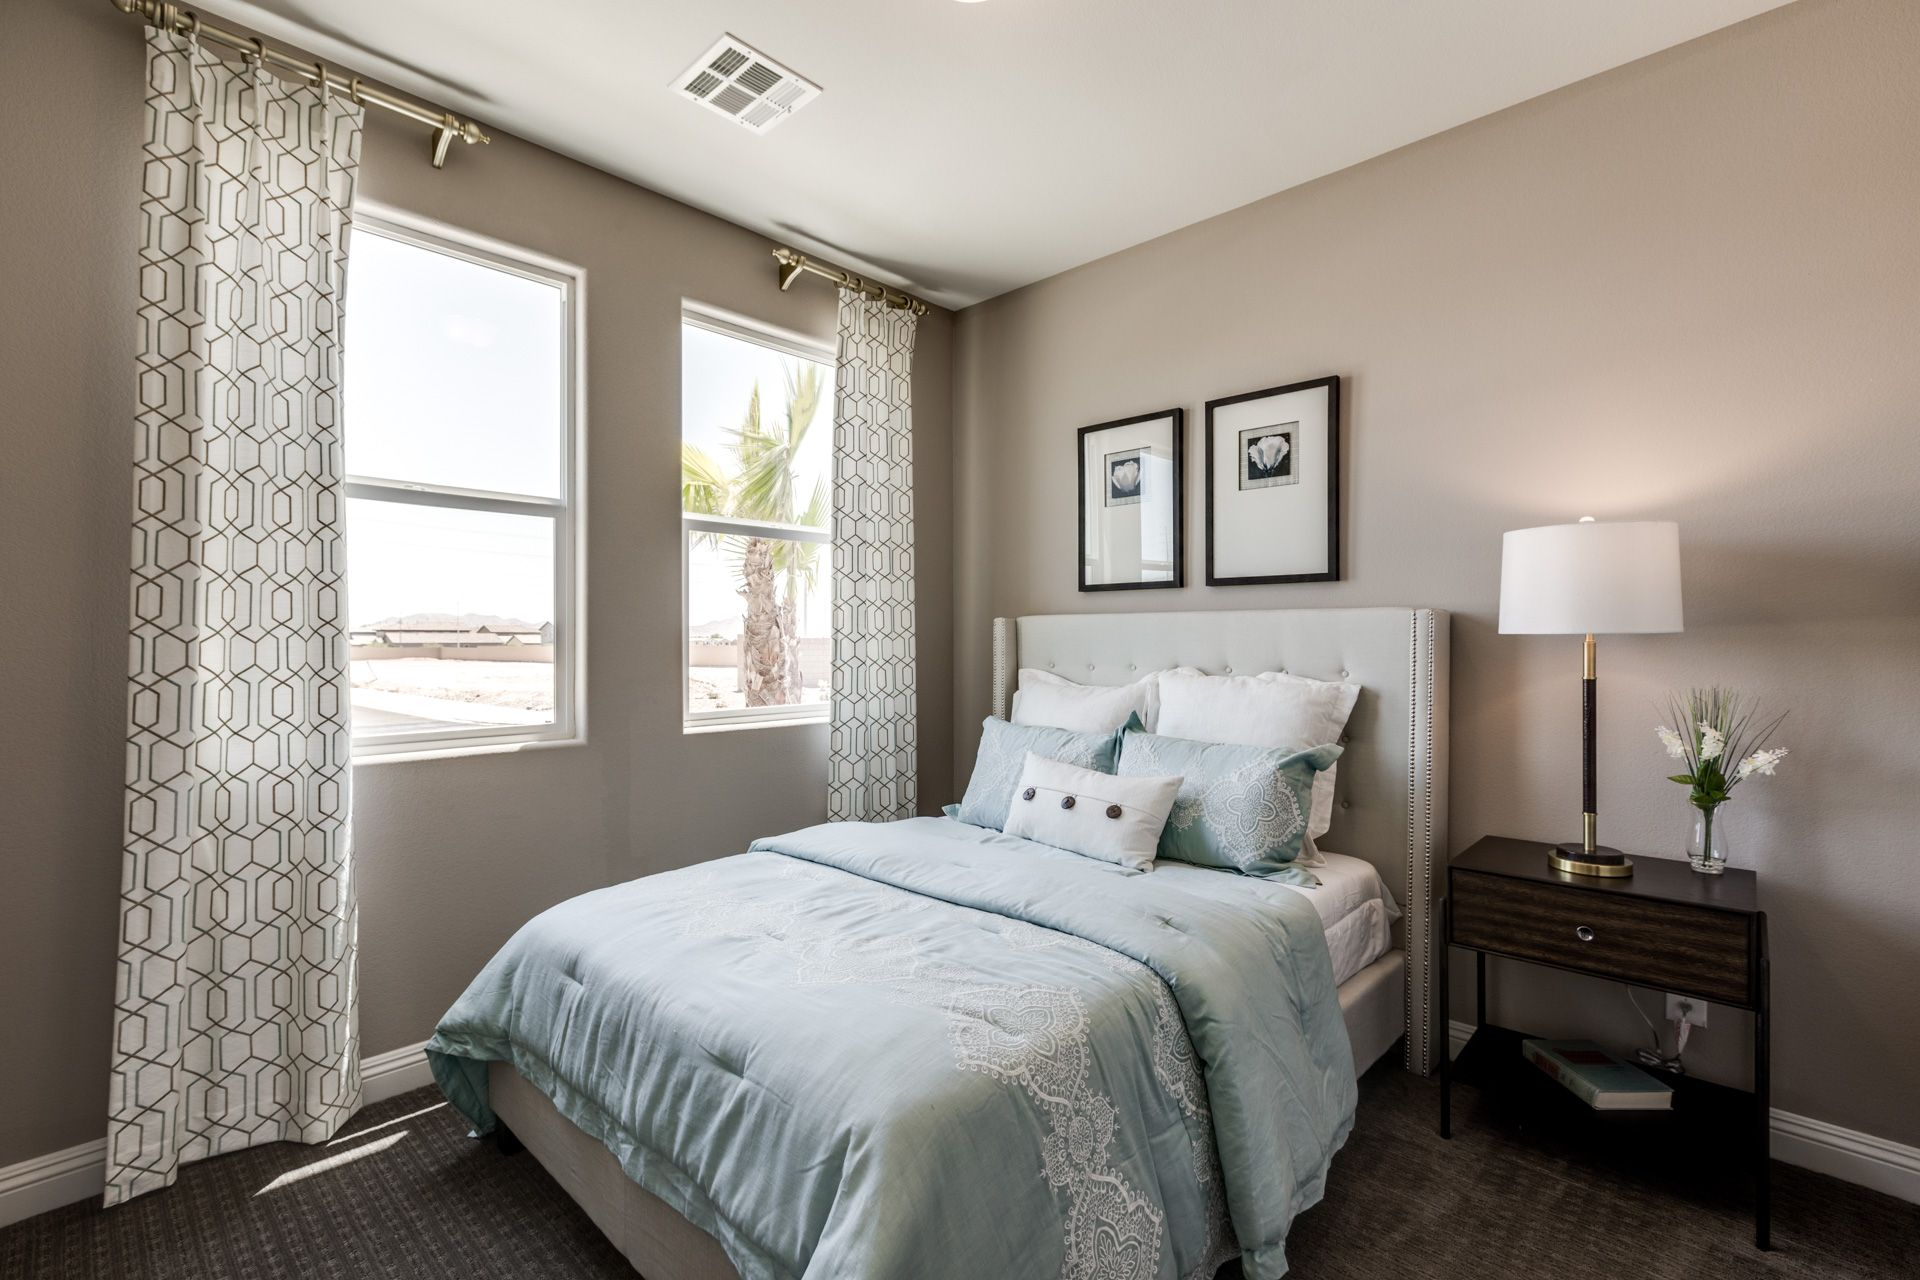 Bedroom featured in the Residence 2370 By Harmony Homes - Las Vegas in Las Vegas, NV